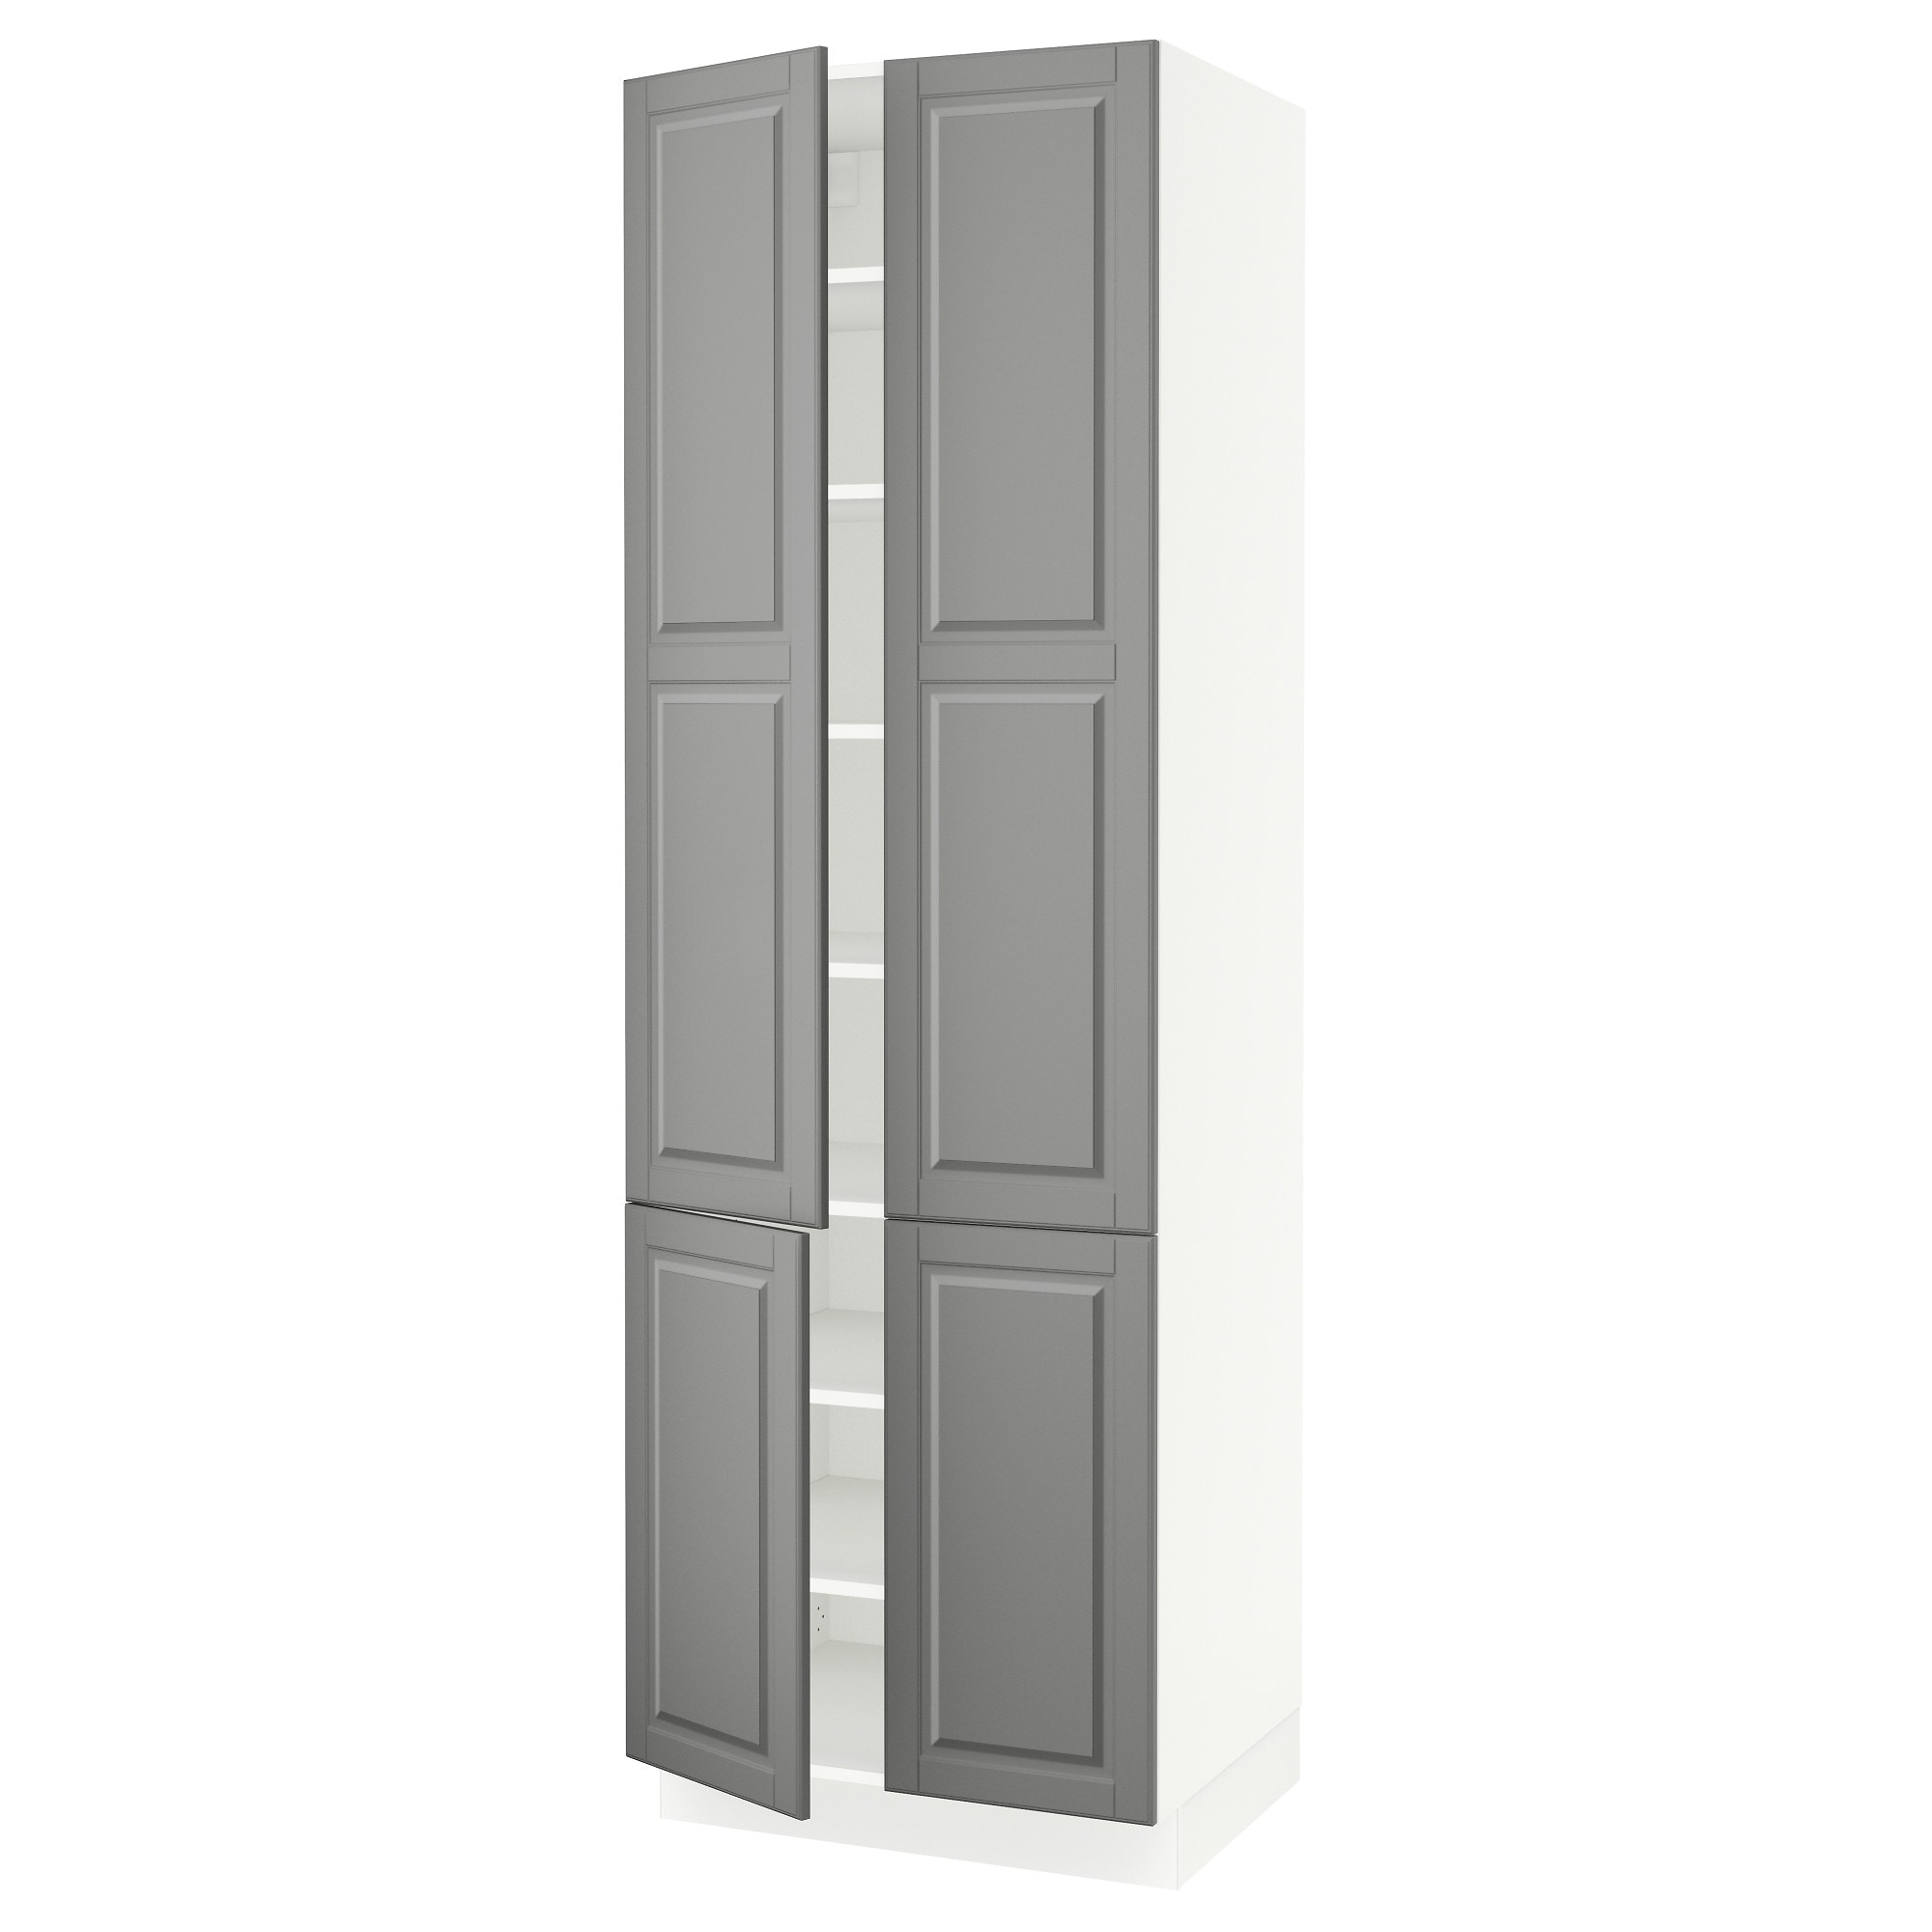 Tall Kitchen Cabinets - SEKTION System - IKEA